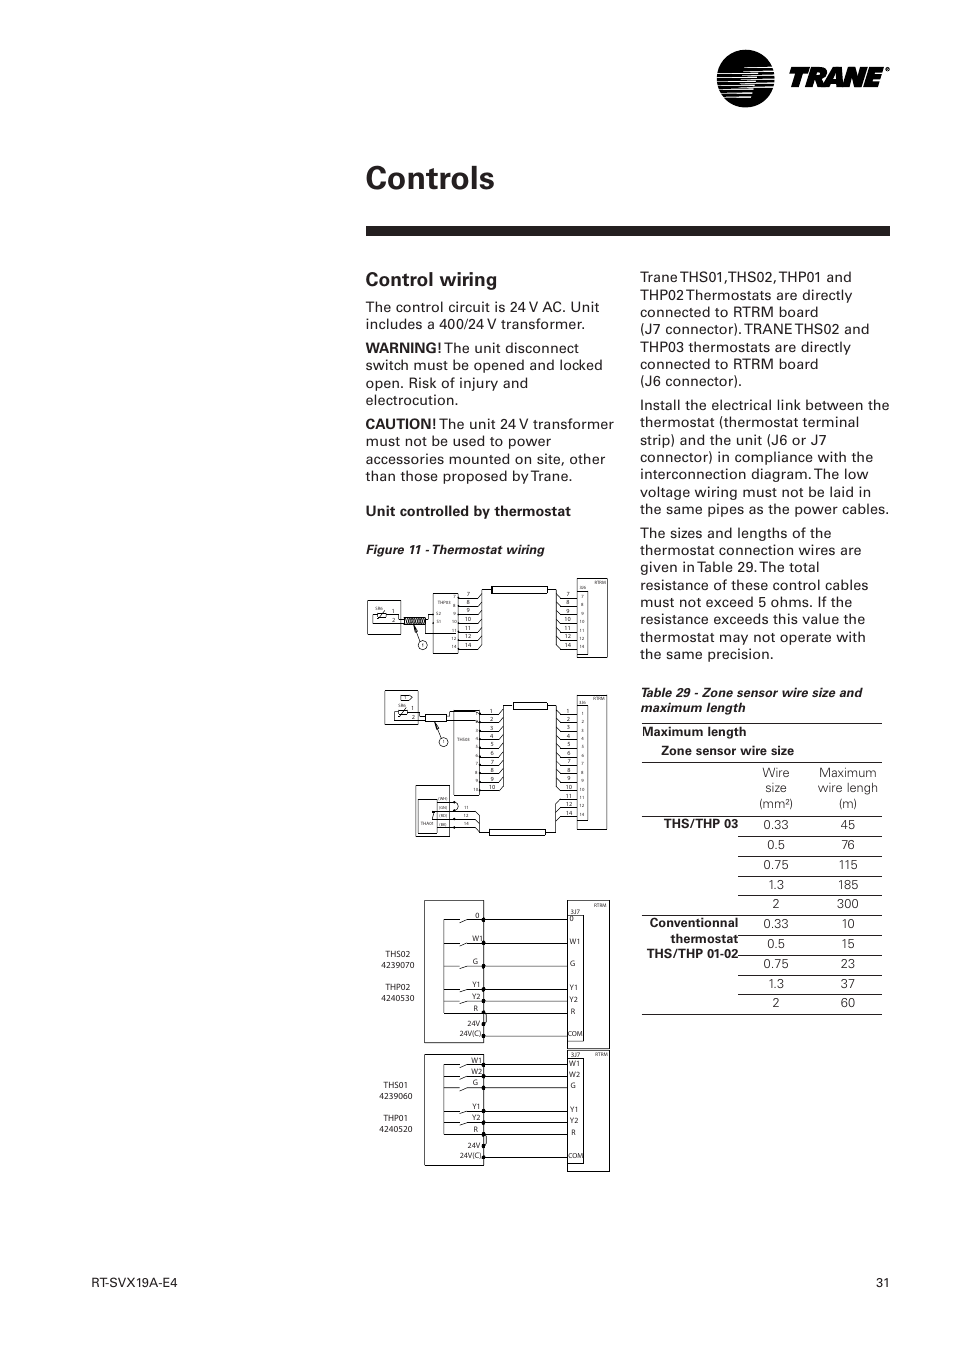 trane thermostat wiring diagram trane image wiring trane thermostat wiring diagram wiring diagram and hernes on trane thermostat wiring diagram